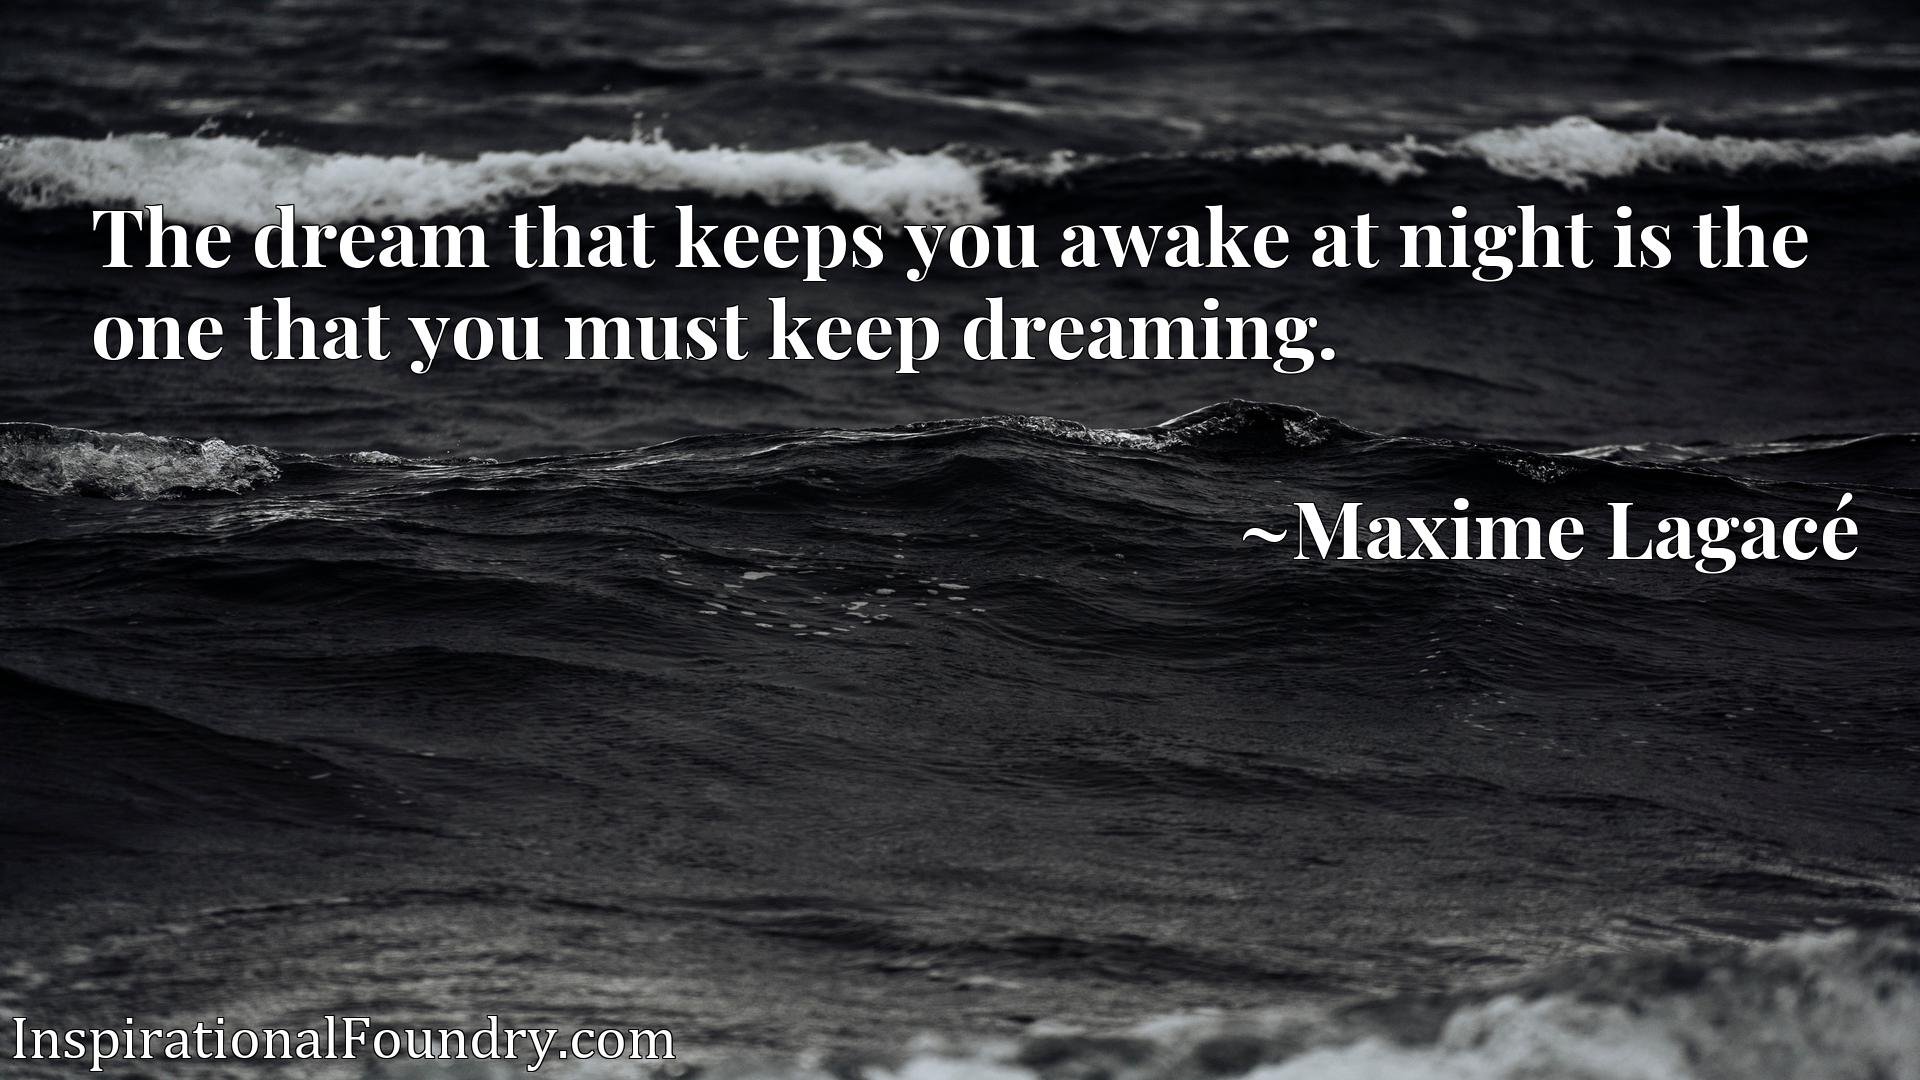 The dream that keeps you awake at night is the one that you must keep dreaming.